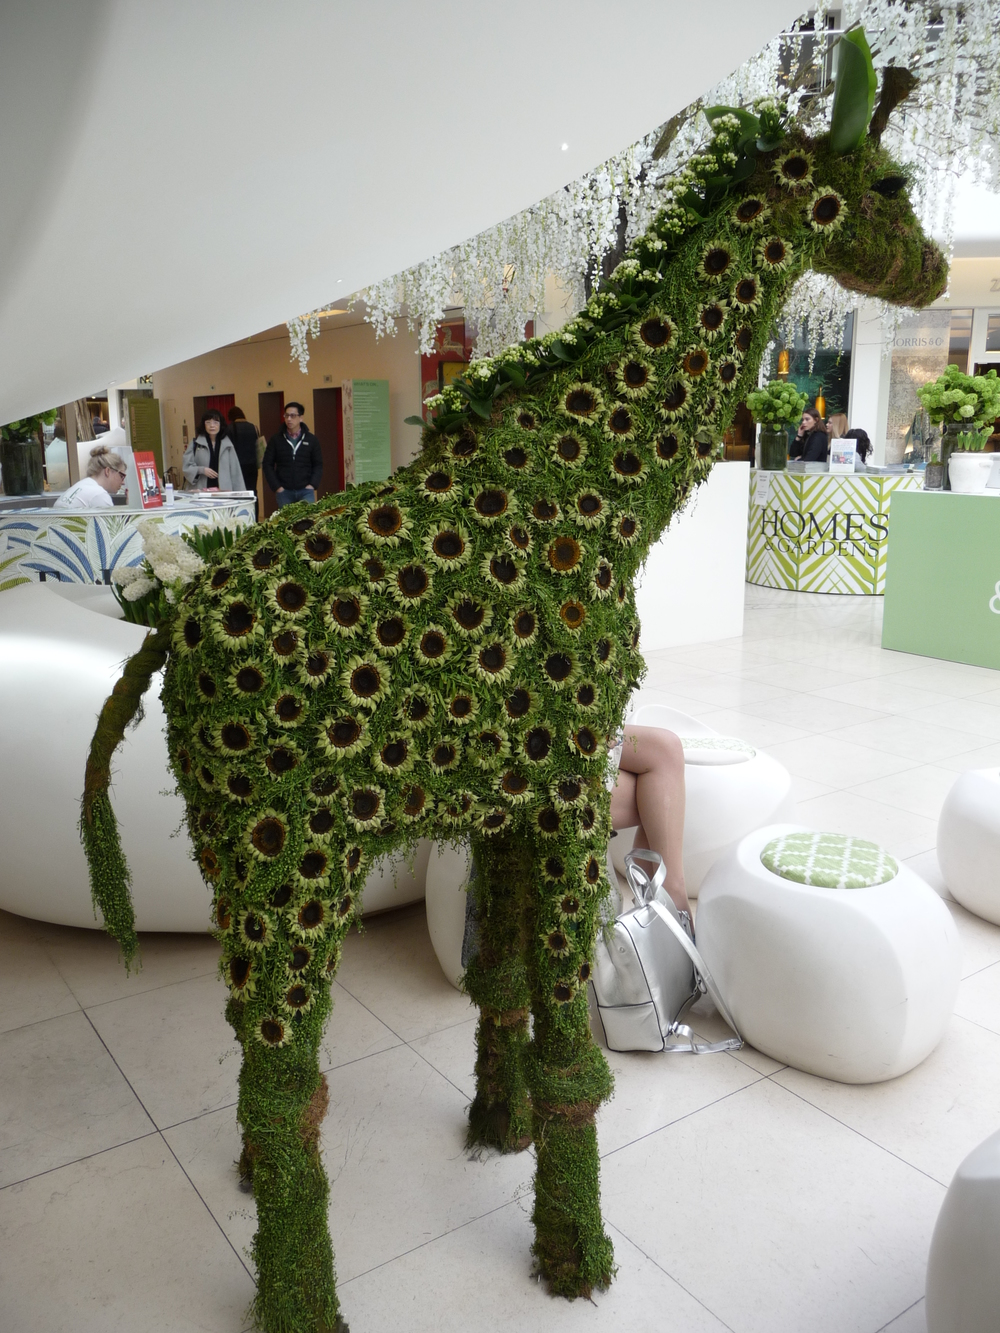 Love this giraffe made from moss and flowers